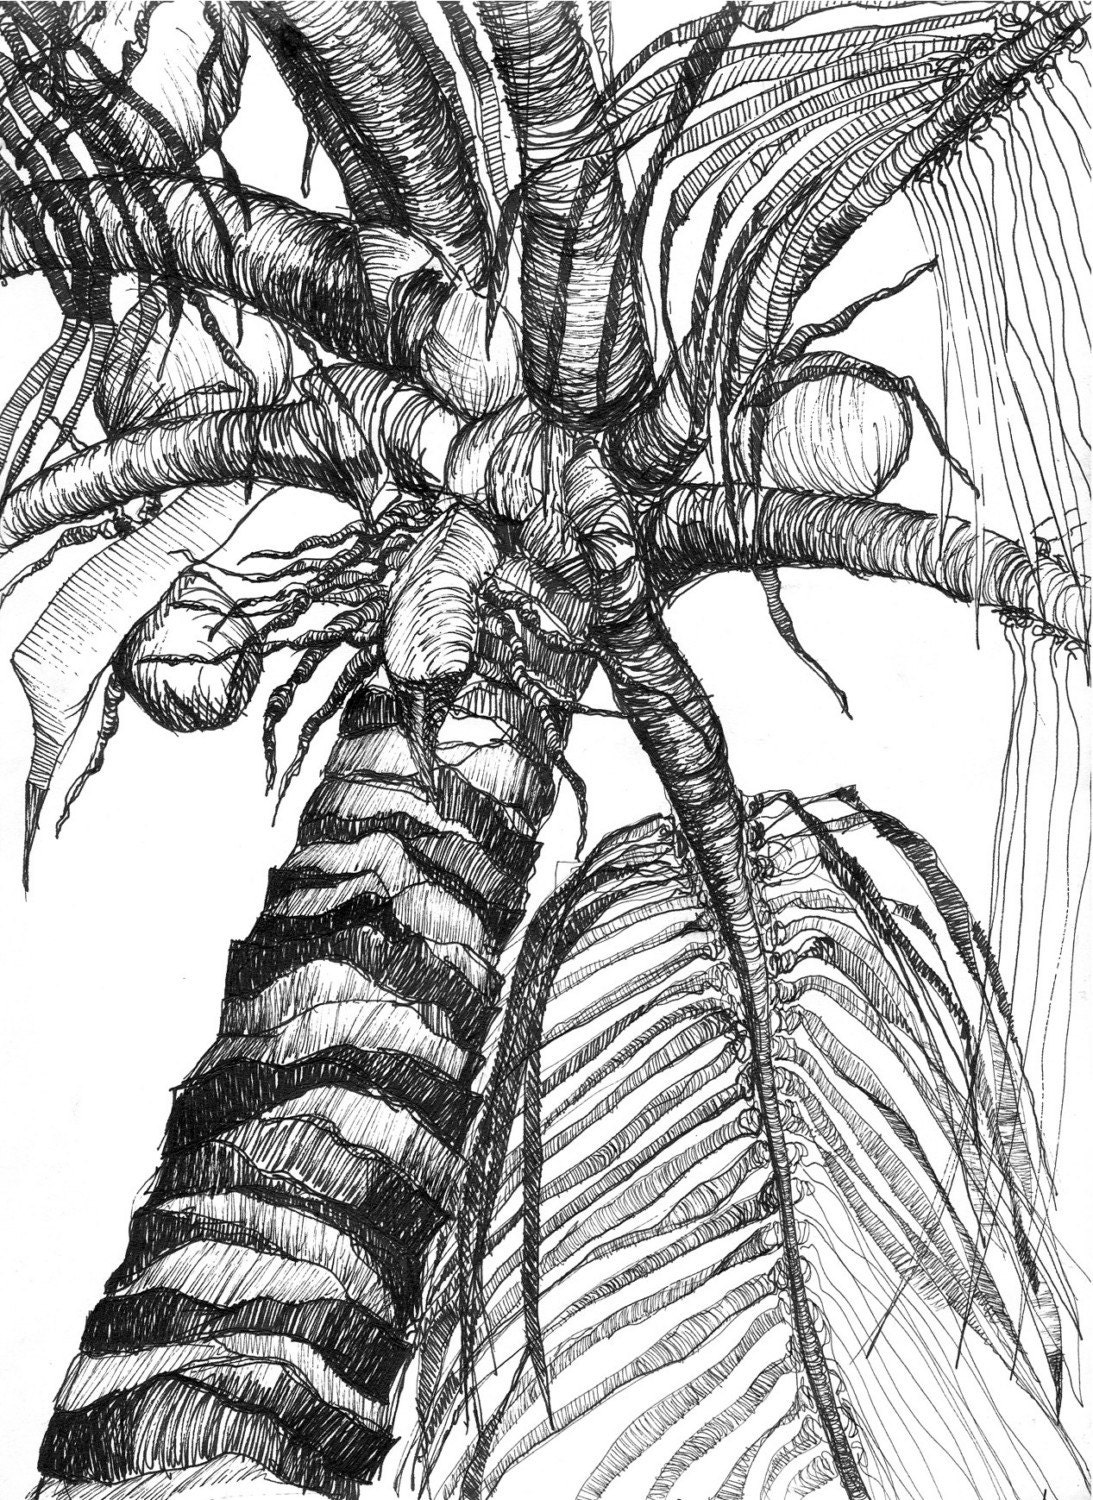 Palm Tree Drawing - Cliparts.co |Palm Tree Sketch Drawing